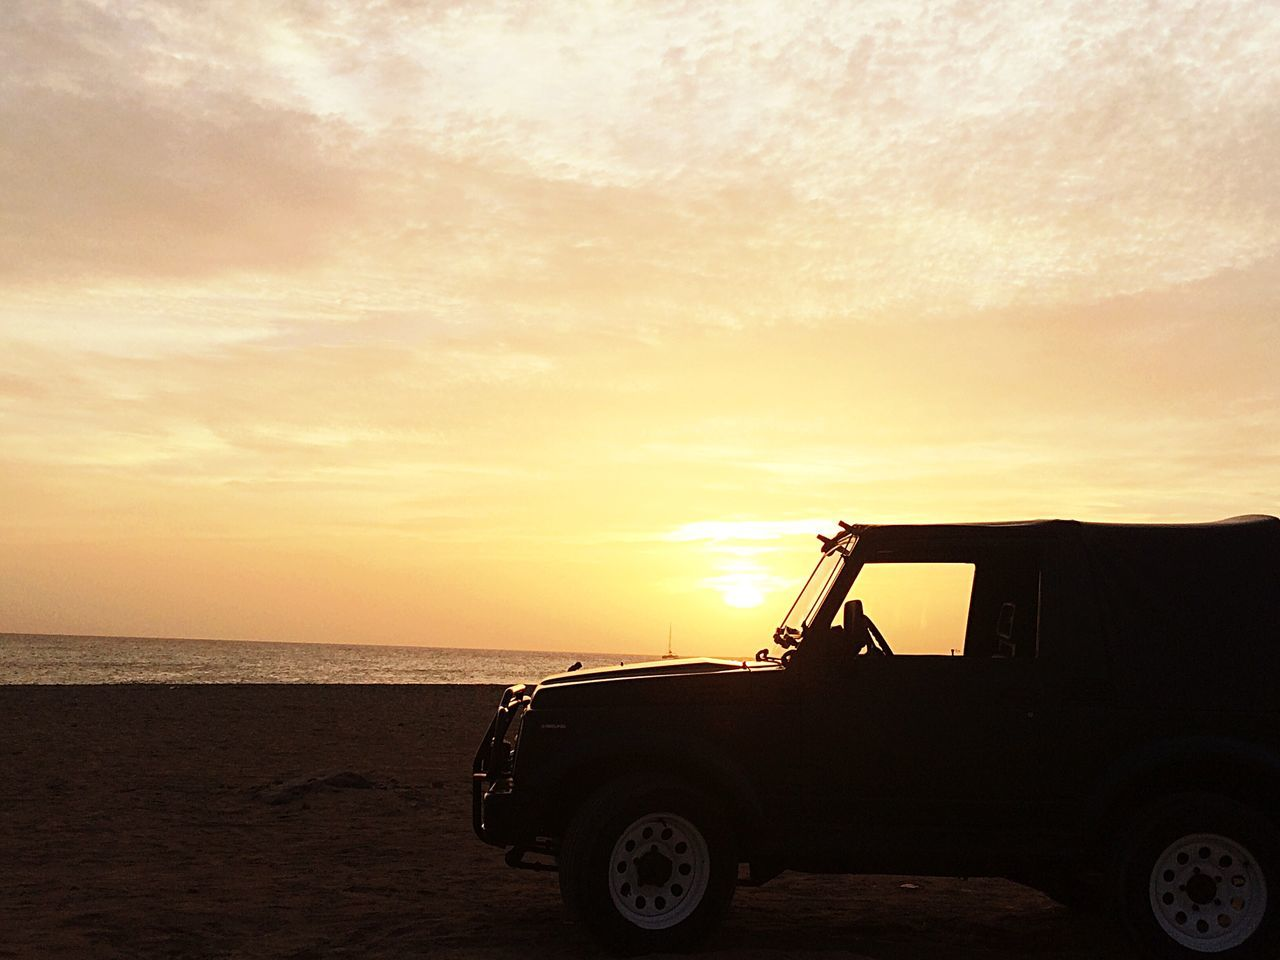 sunset, sky, transportation, nature, silhouette, sun, land vehicle, beach, sea, scenics, no people, beauty in nature, outdoors, day